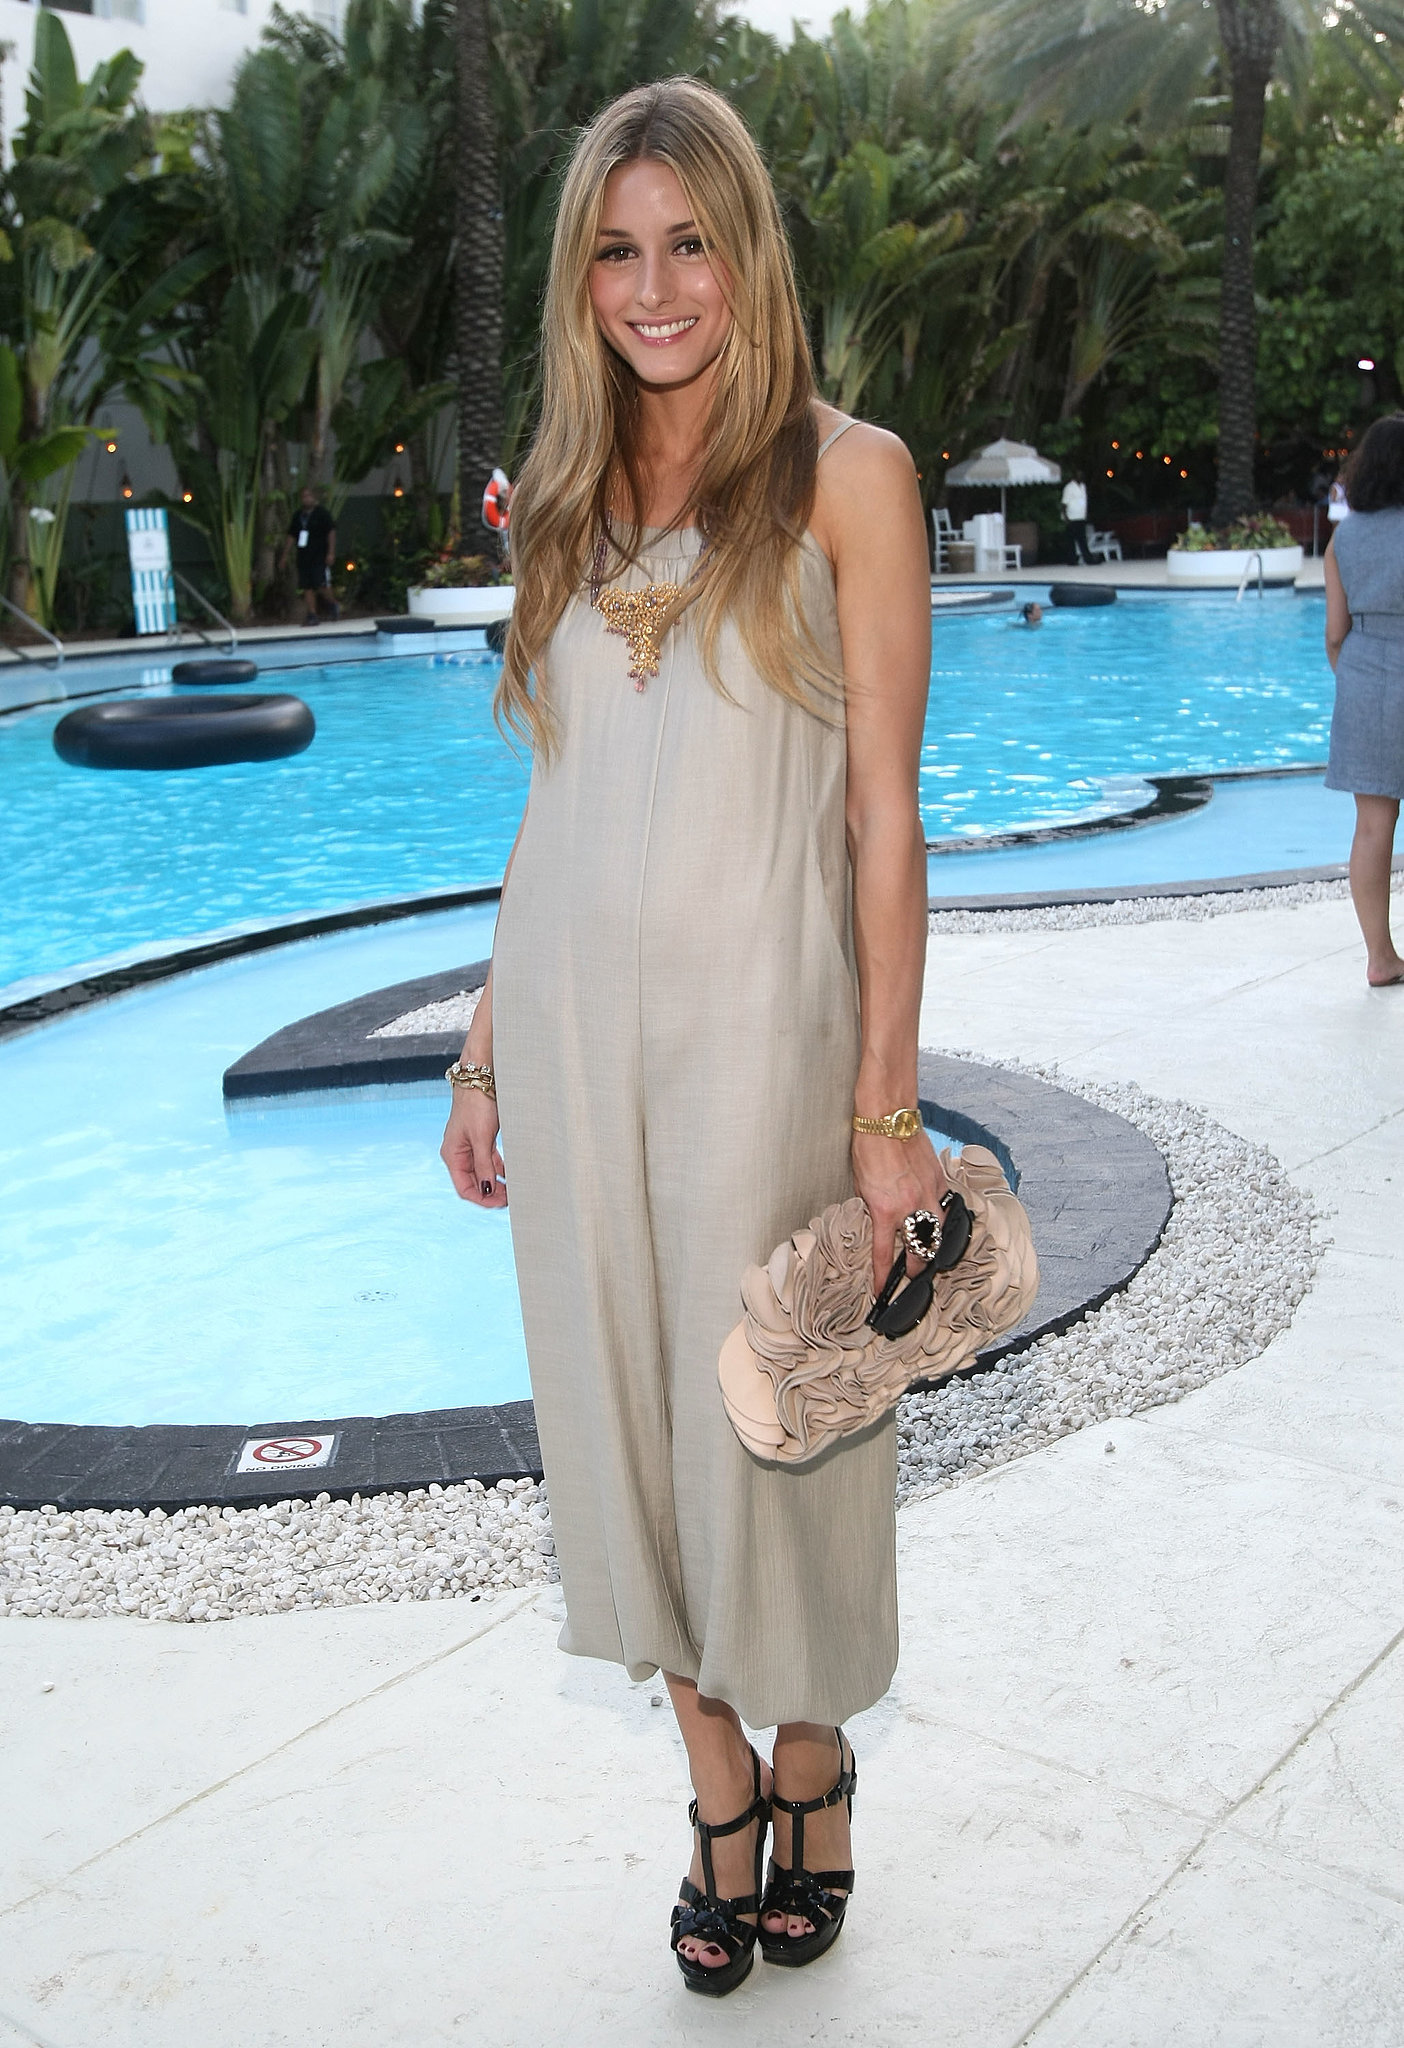 Poolside-chic in a summery frock and eclectic add-ons in Miami in June 2009.